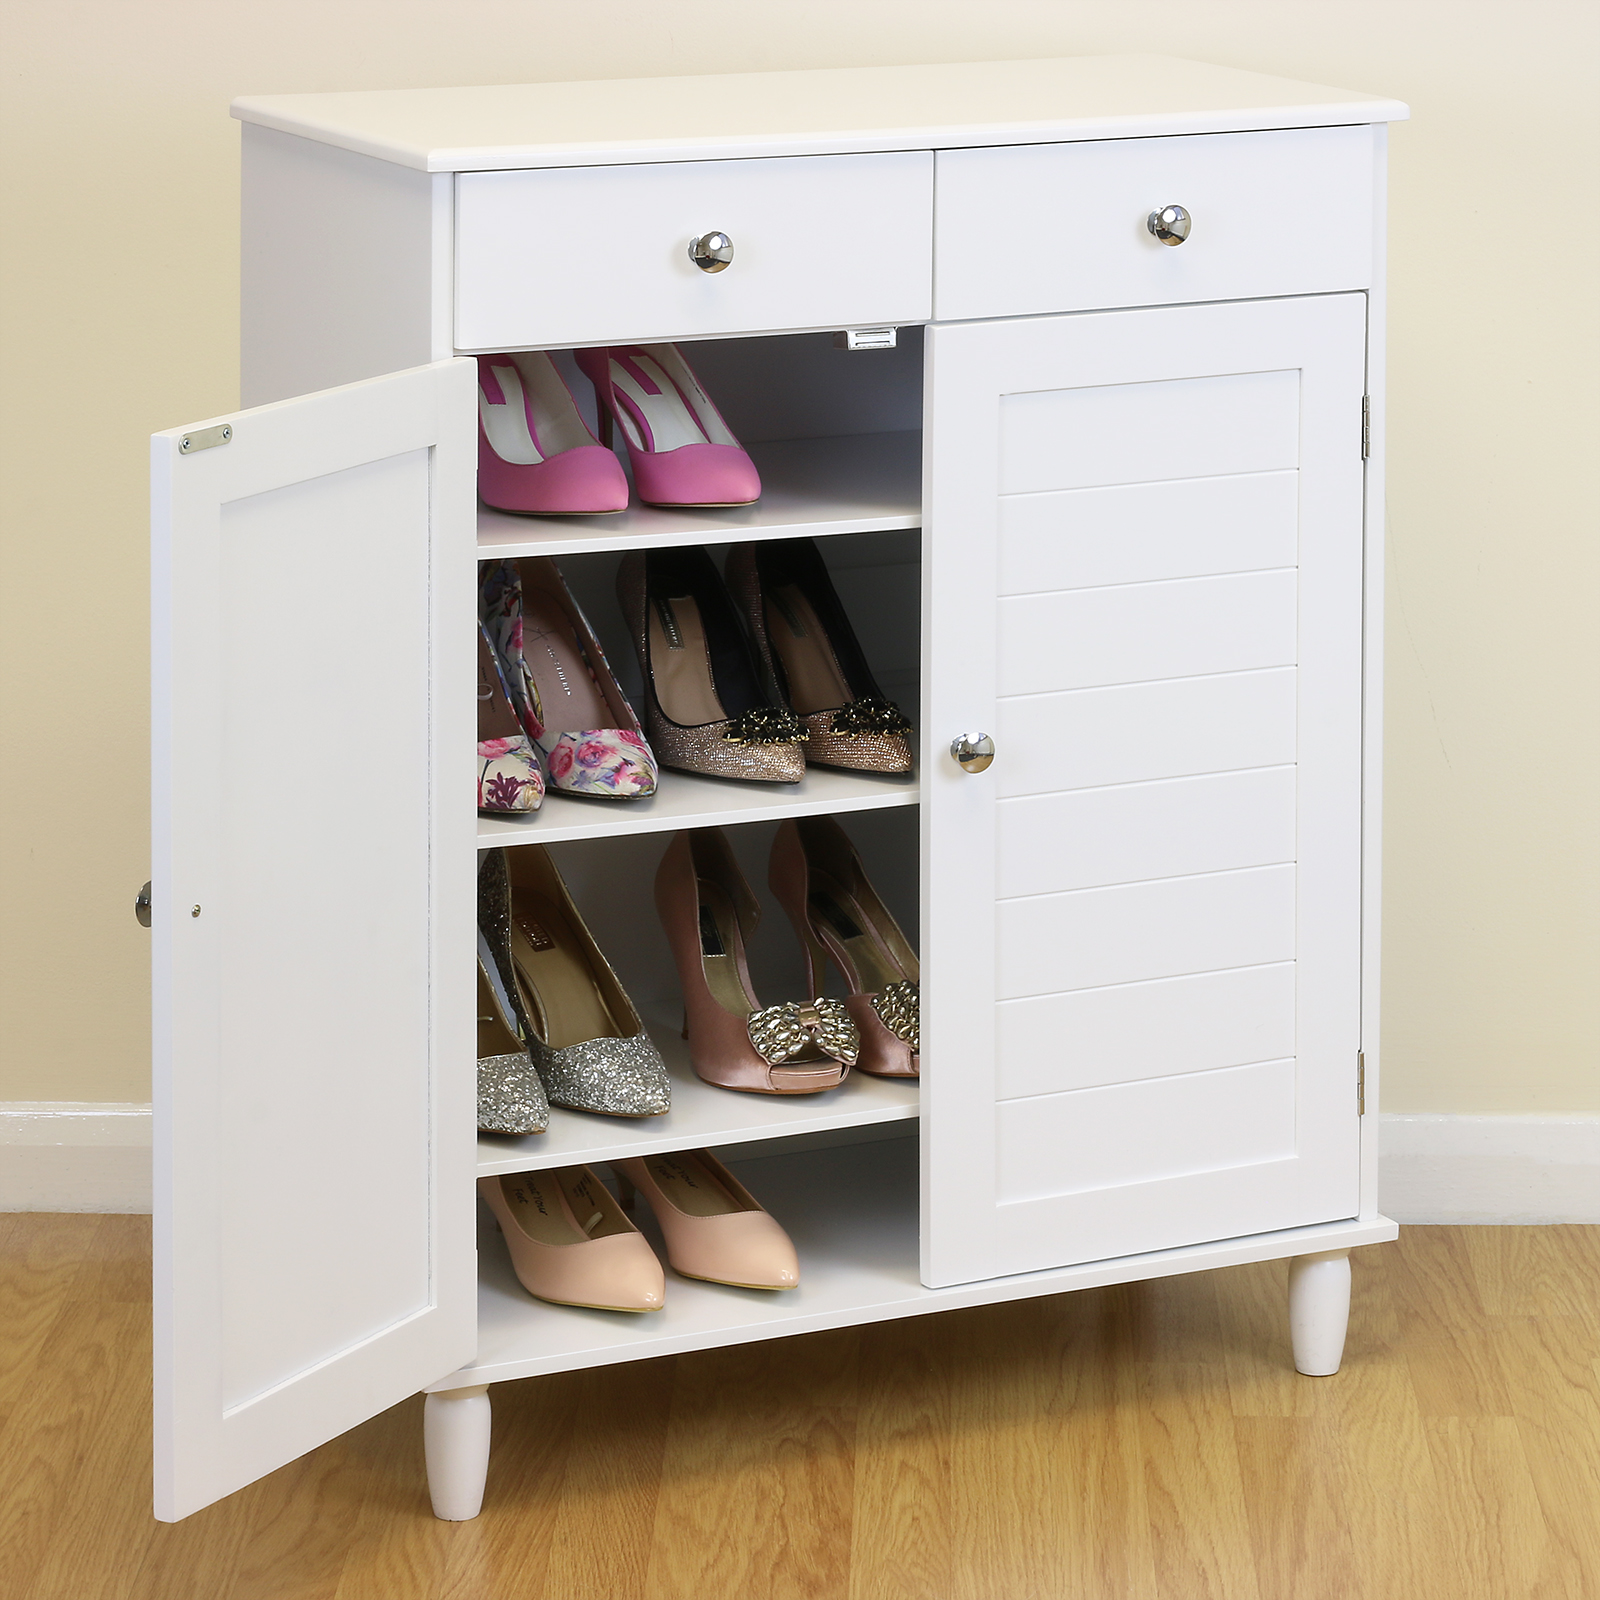 Today we're showing off some beautiful ways to organize your shoe collection and stylize the nook they already live in. From mudrooms to bedrooms, there are a variety of places around the house they can and will get cluttered with the family's shoes, so why not find a piece to keep them stored and ready for the day's events? Let's take a look at 20 shoe storage cabinets that are both.